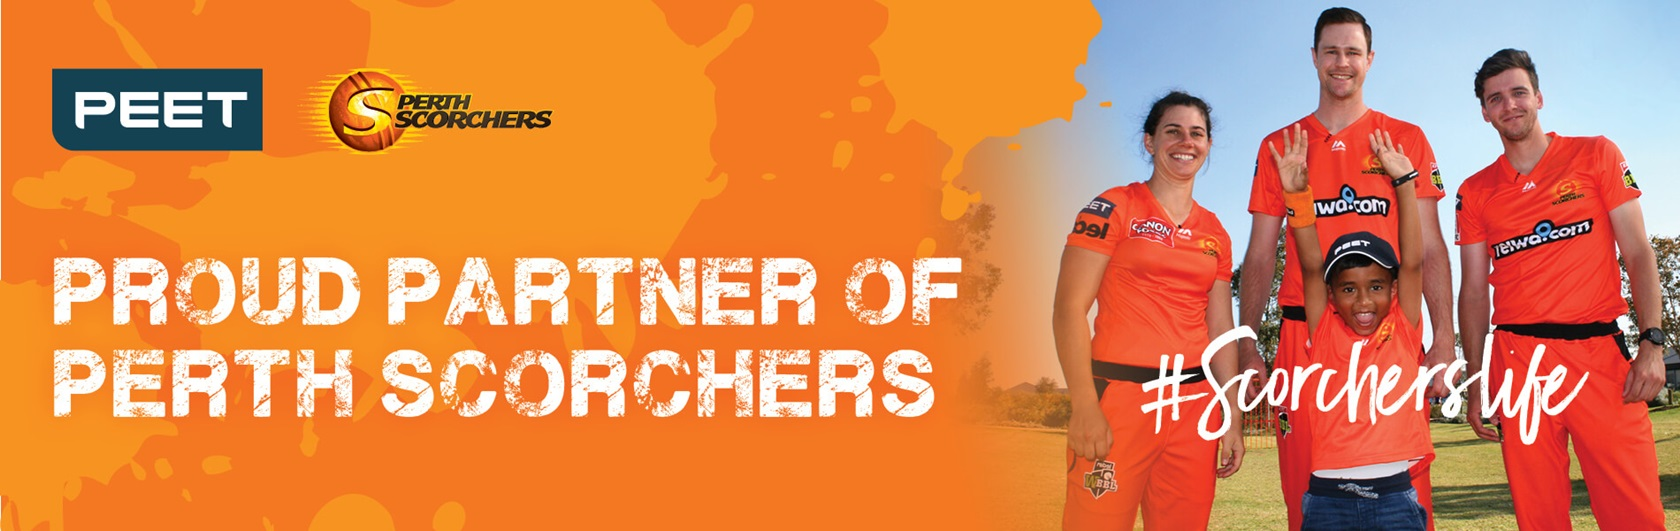 Perth Scorchers Peet Partnership